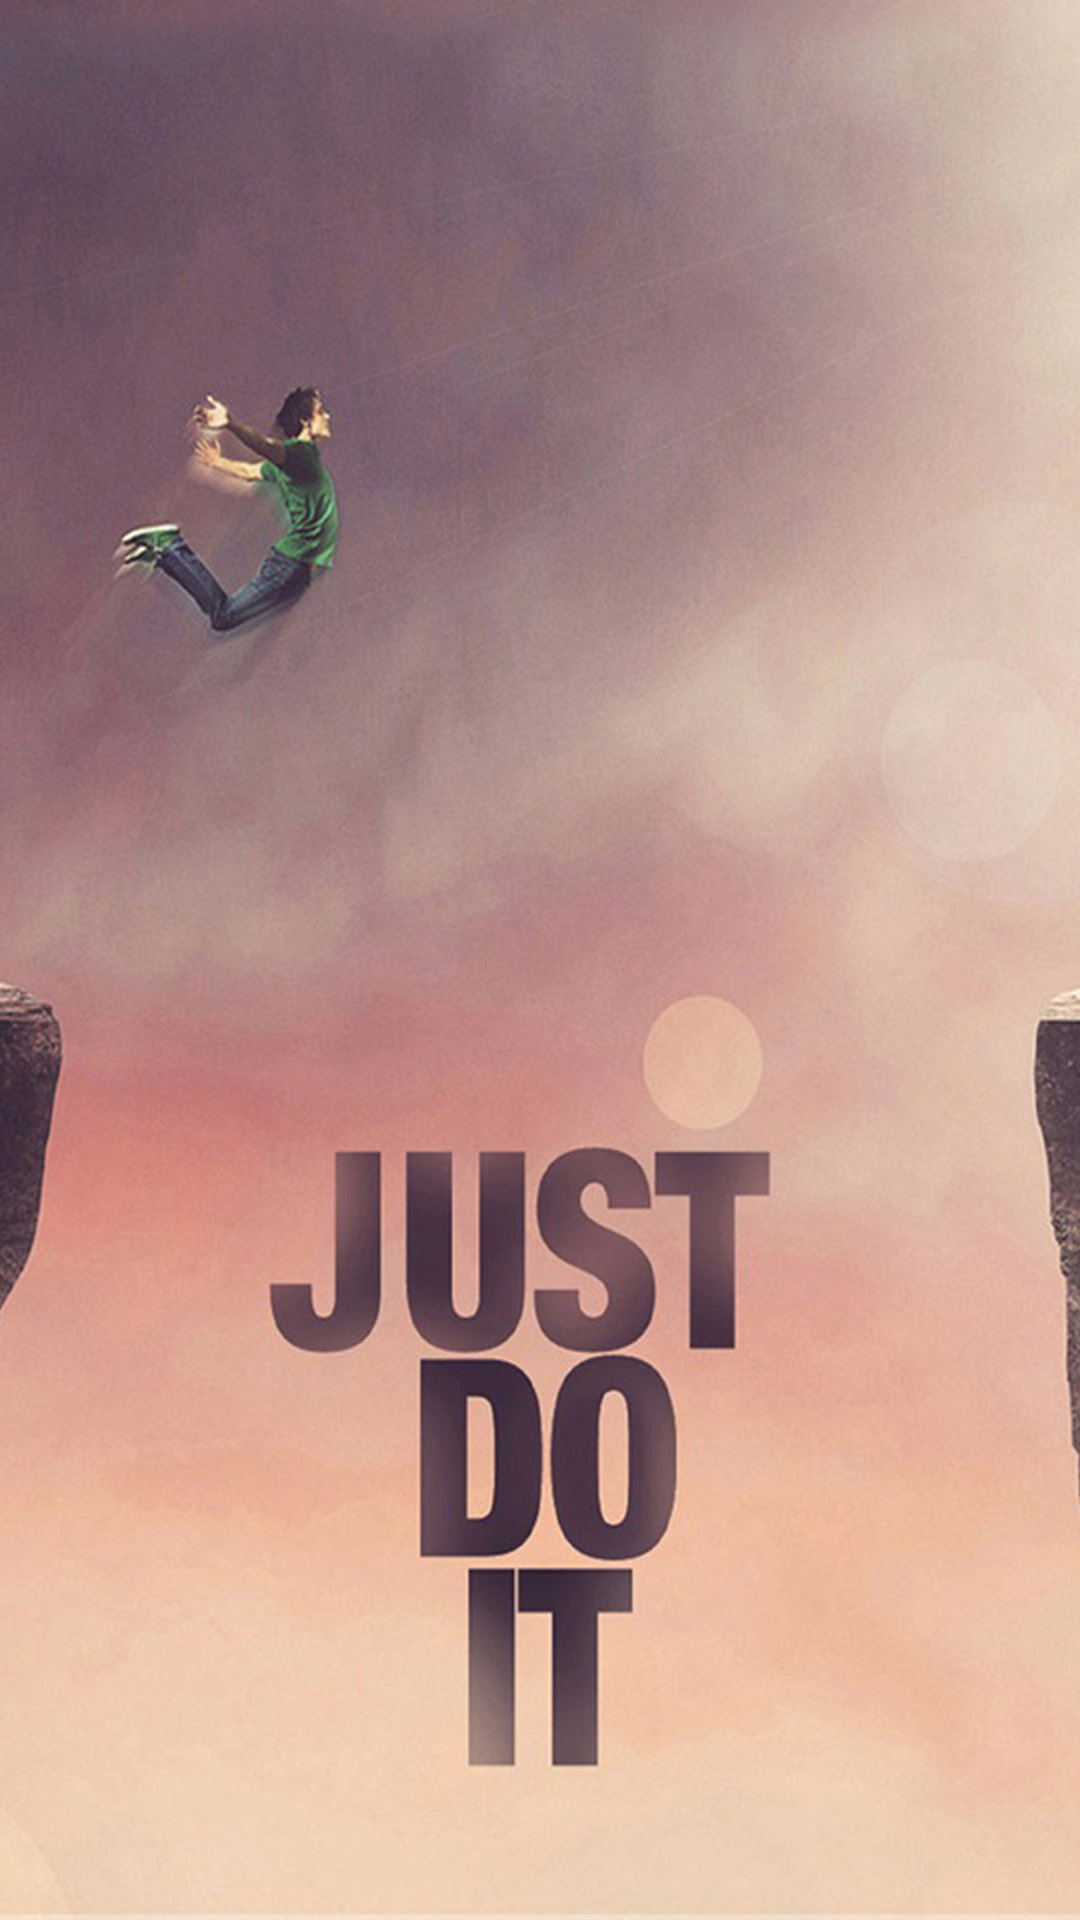 Free Download Pics Photos Nike Just Do It Wallpaper Iphone